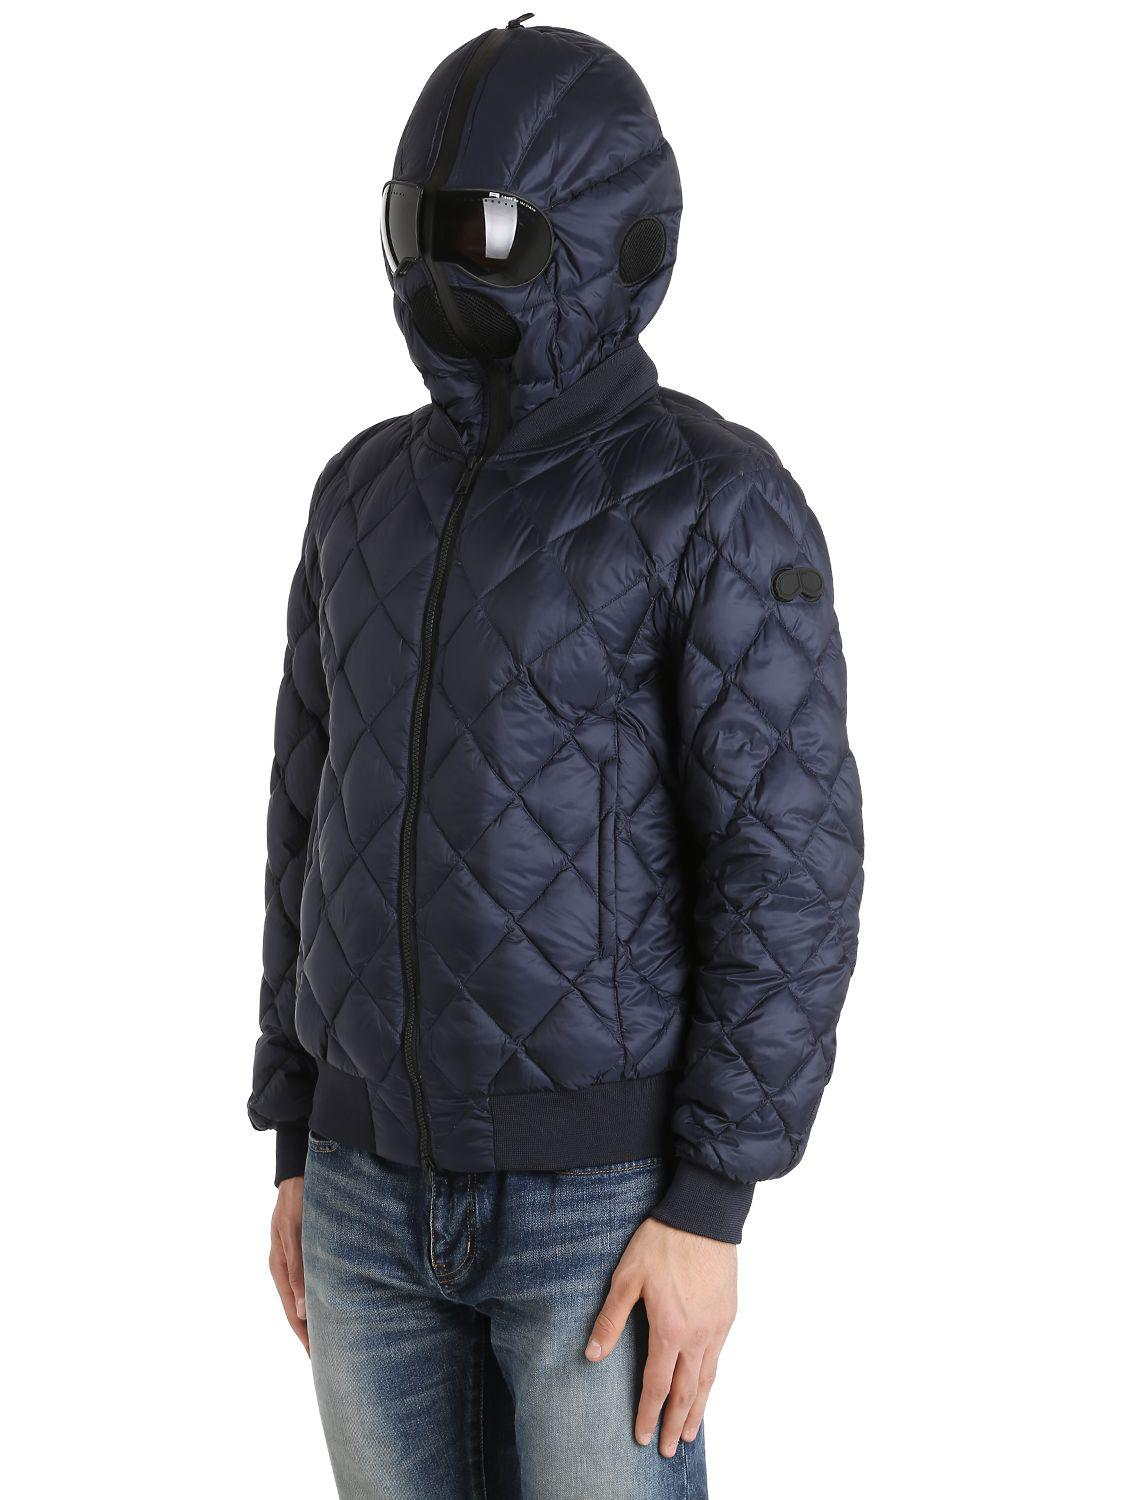 Ai Riders On The Storm Quilted Micro Ripstop Down Bomber Jacket in Navy (Blue) for Men